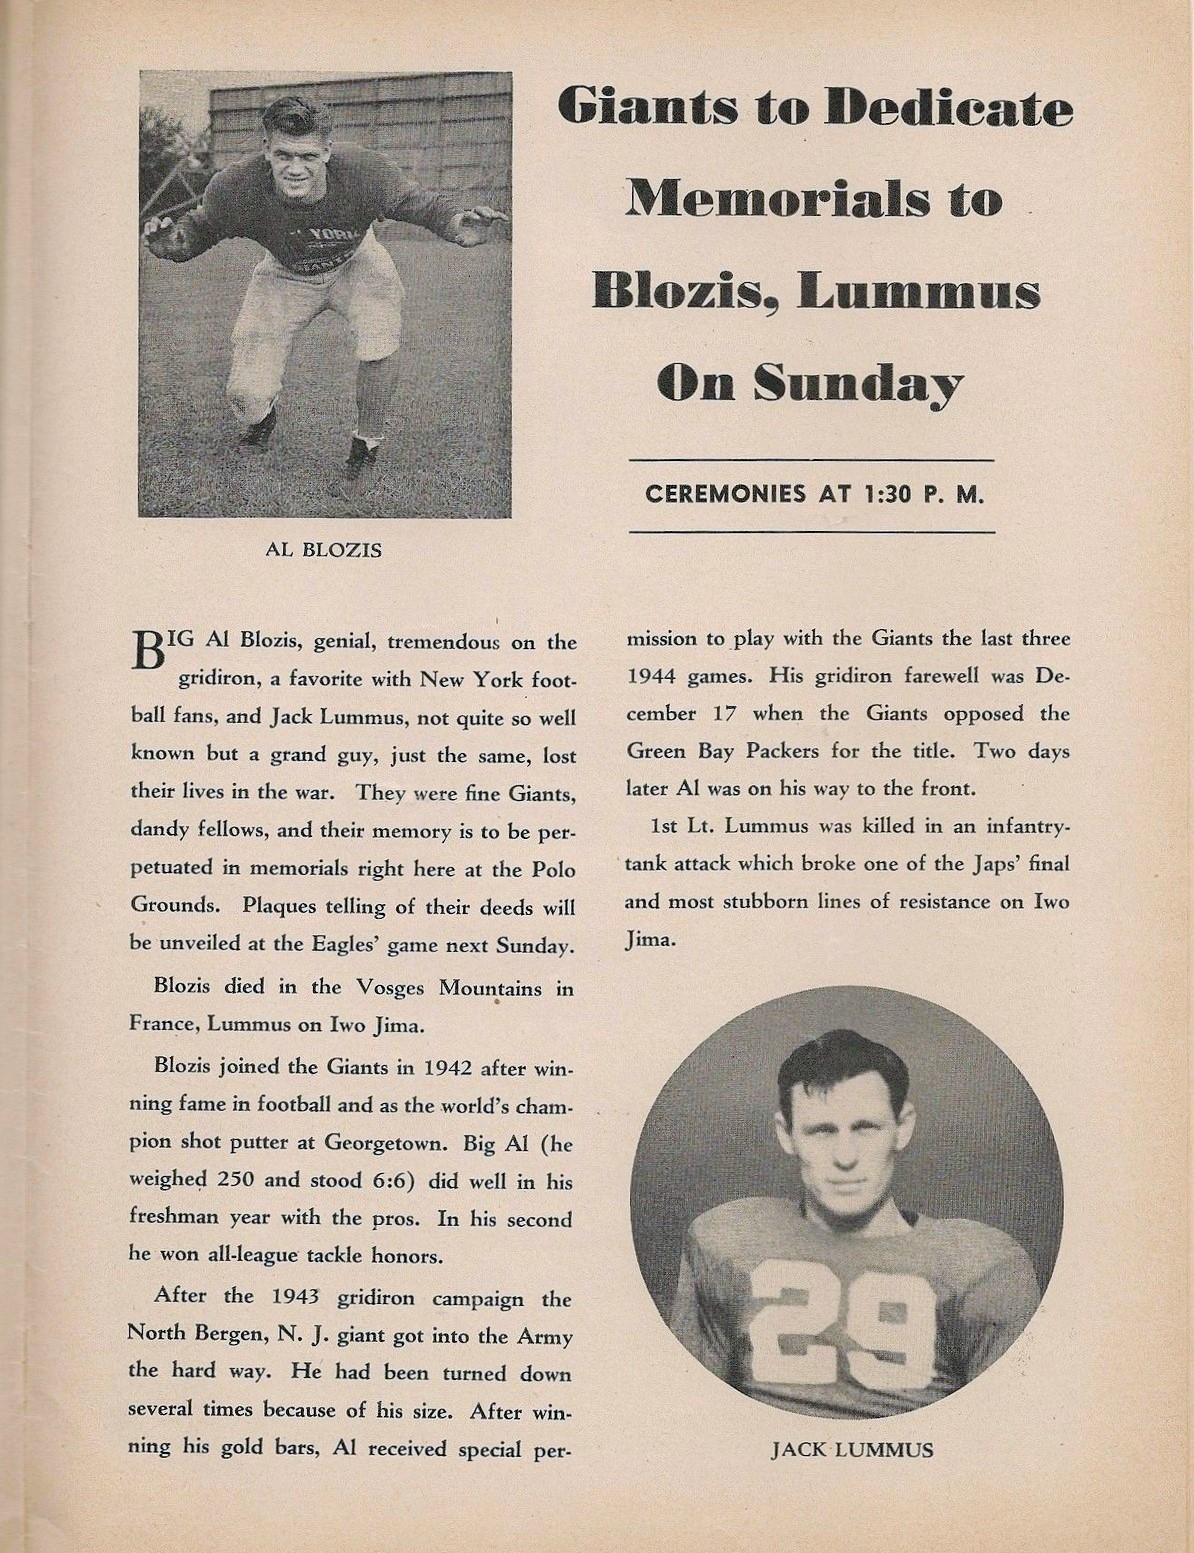 Al Blozis and Jack Lumus Memorials, New York Giants Game Program (November 25, 1945)